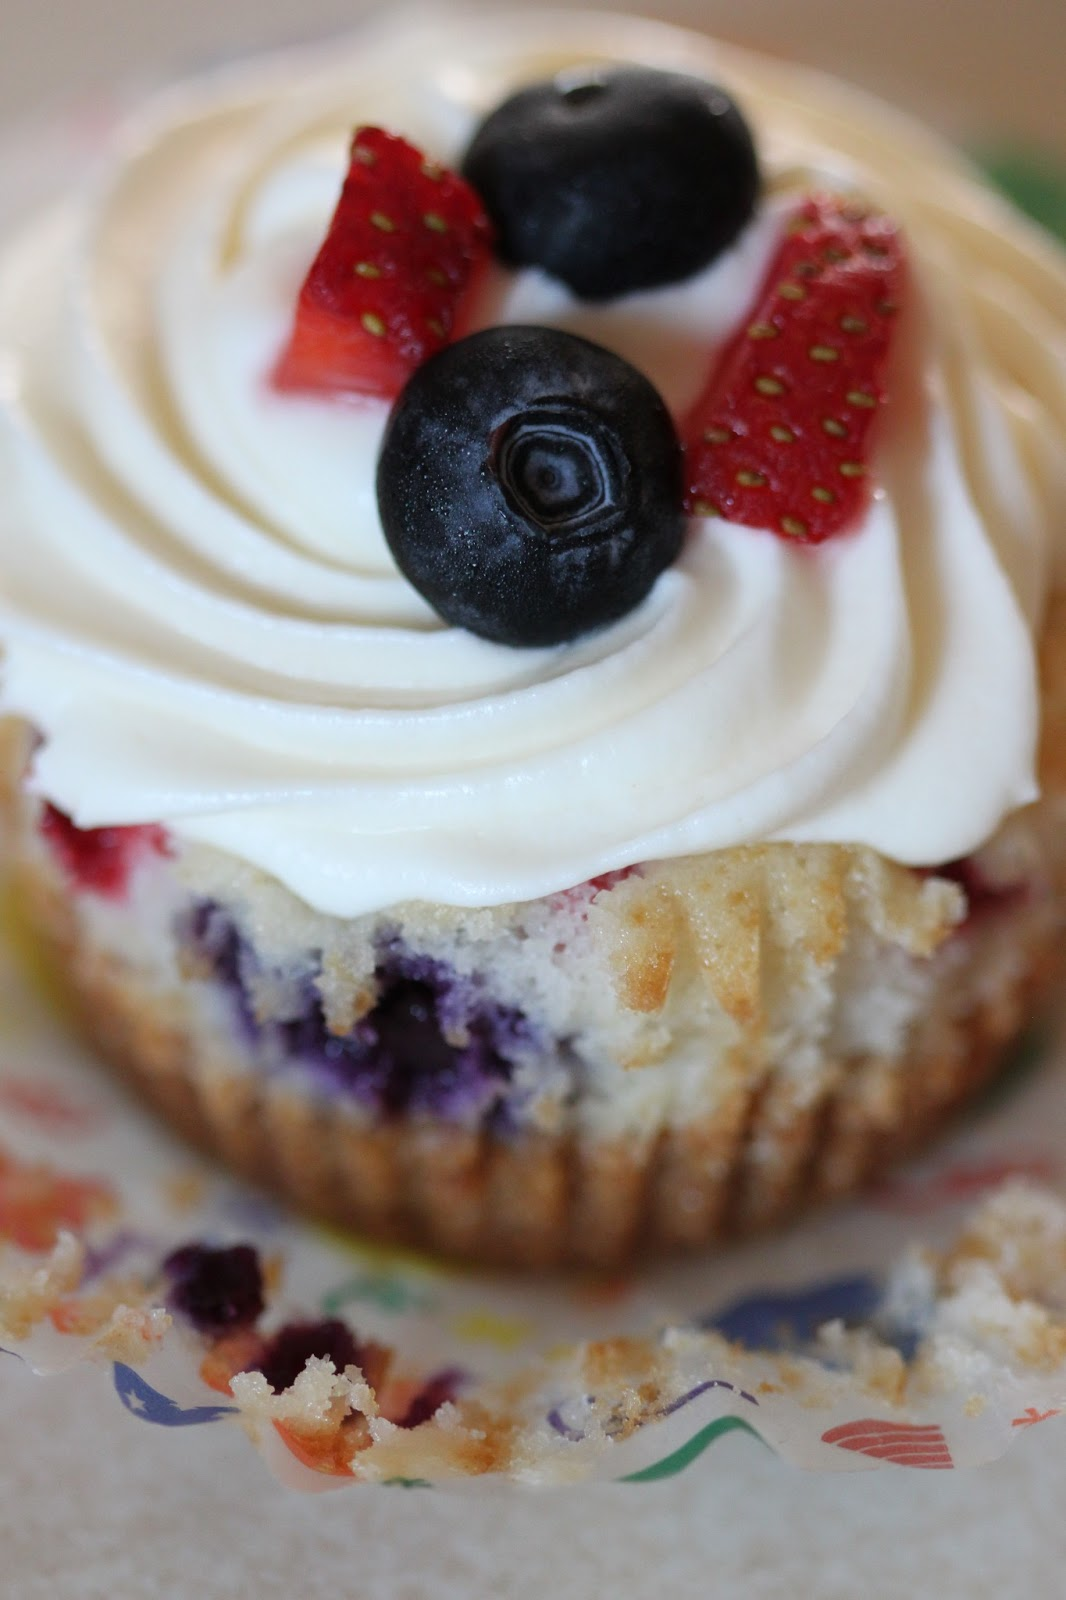 ... : Red White and Blue Cheesecake Cupcakes (Strawberry and Blueberry